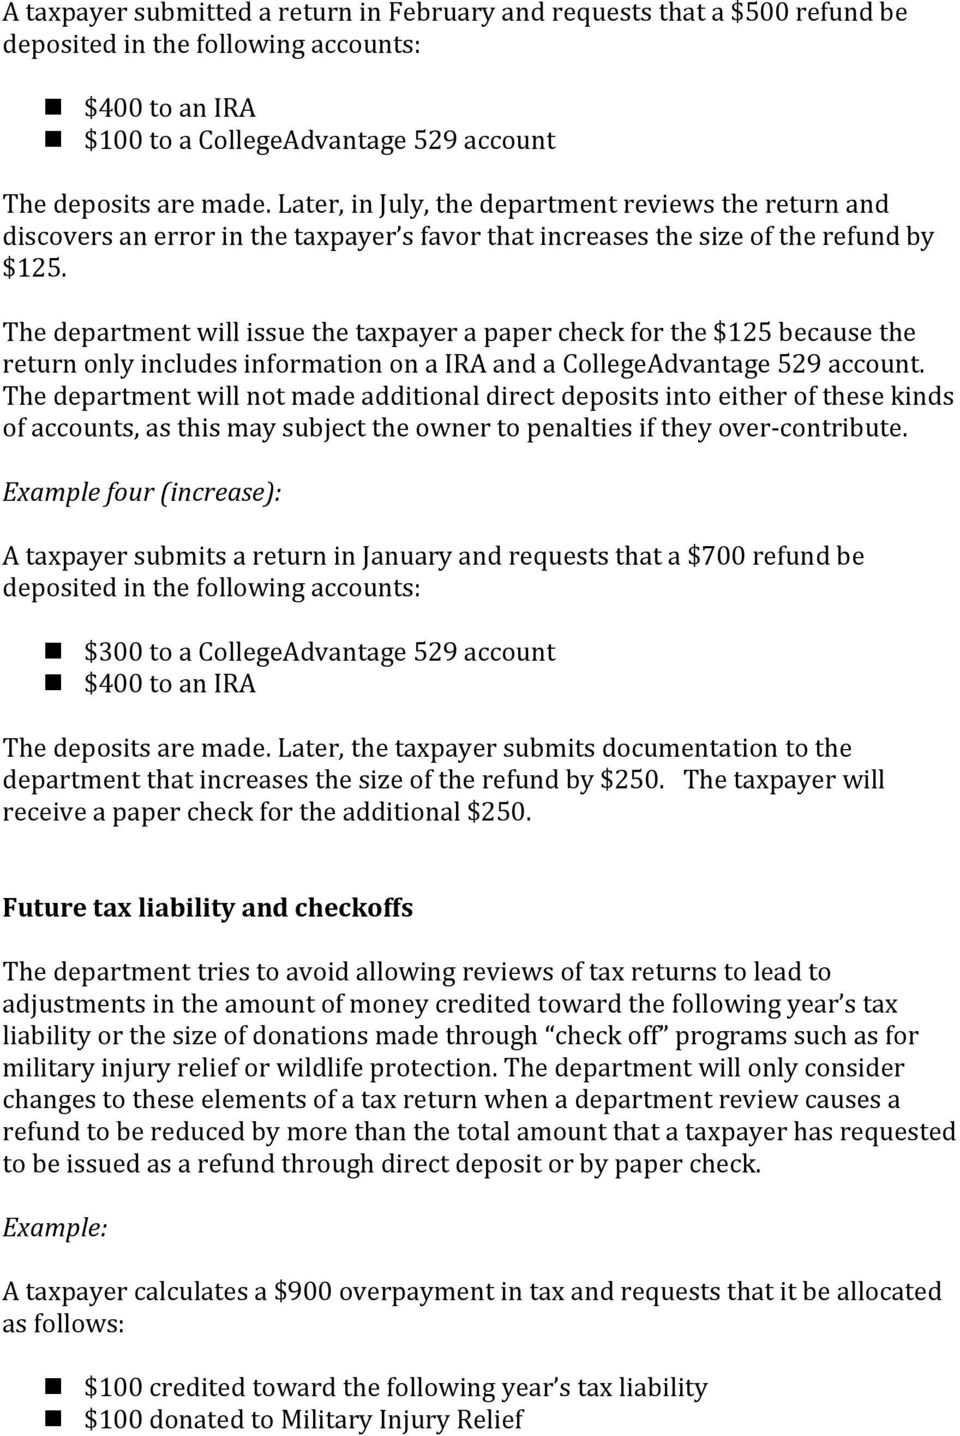 The department will issue the taxpayer a paper check for the $125 because the return only includes information on a IRA and a CollegeAdvantage 529 account.